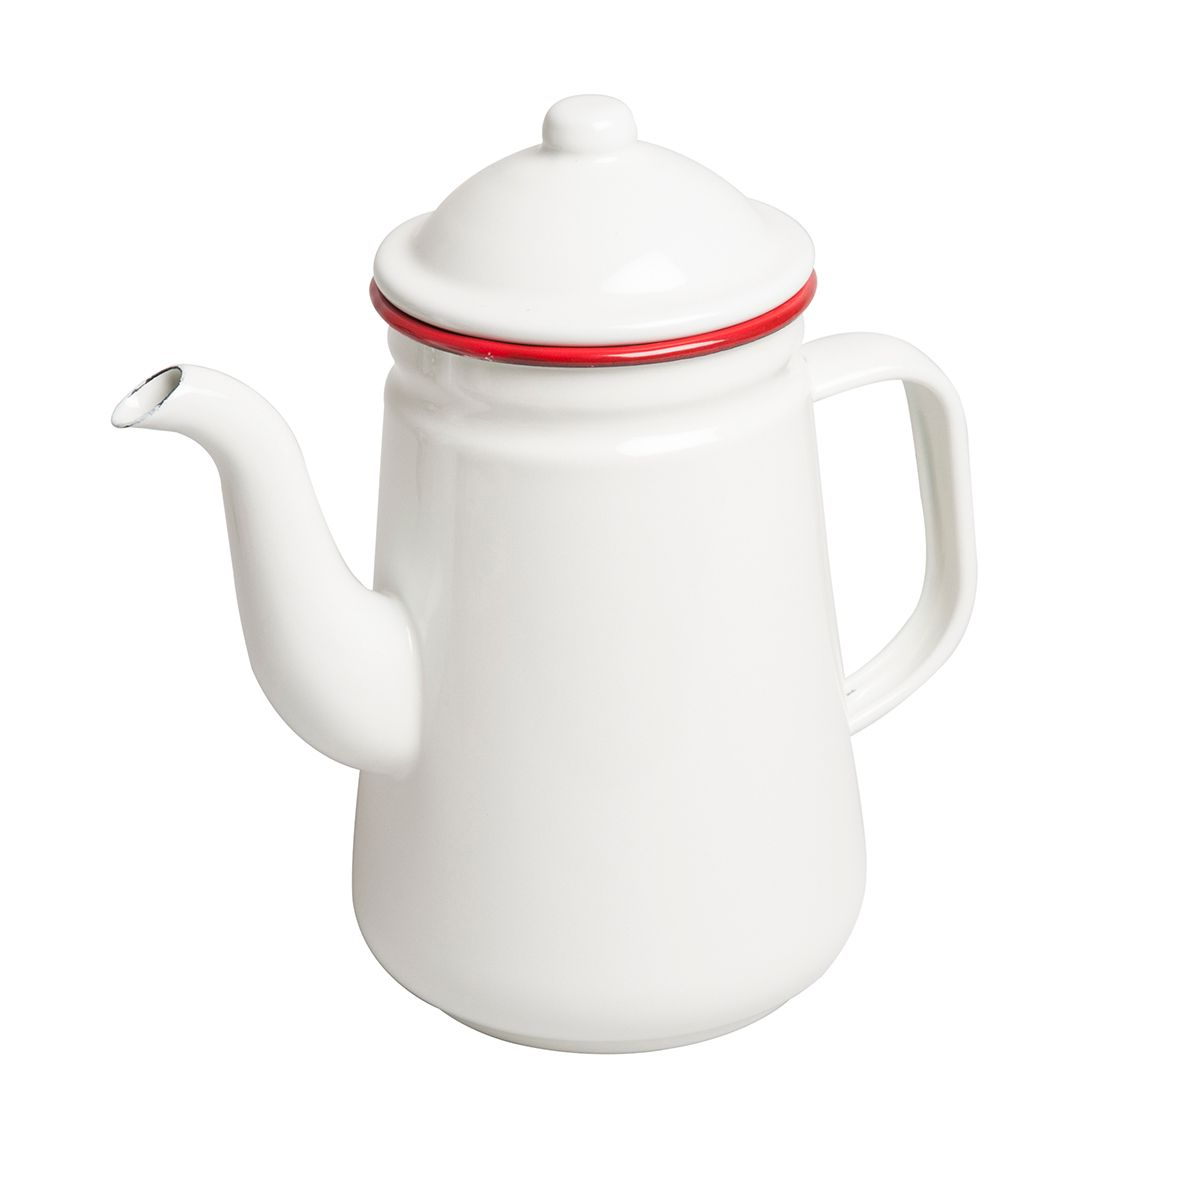 Koffiepot, emaille, rood, 1 liter